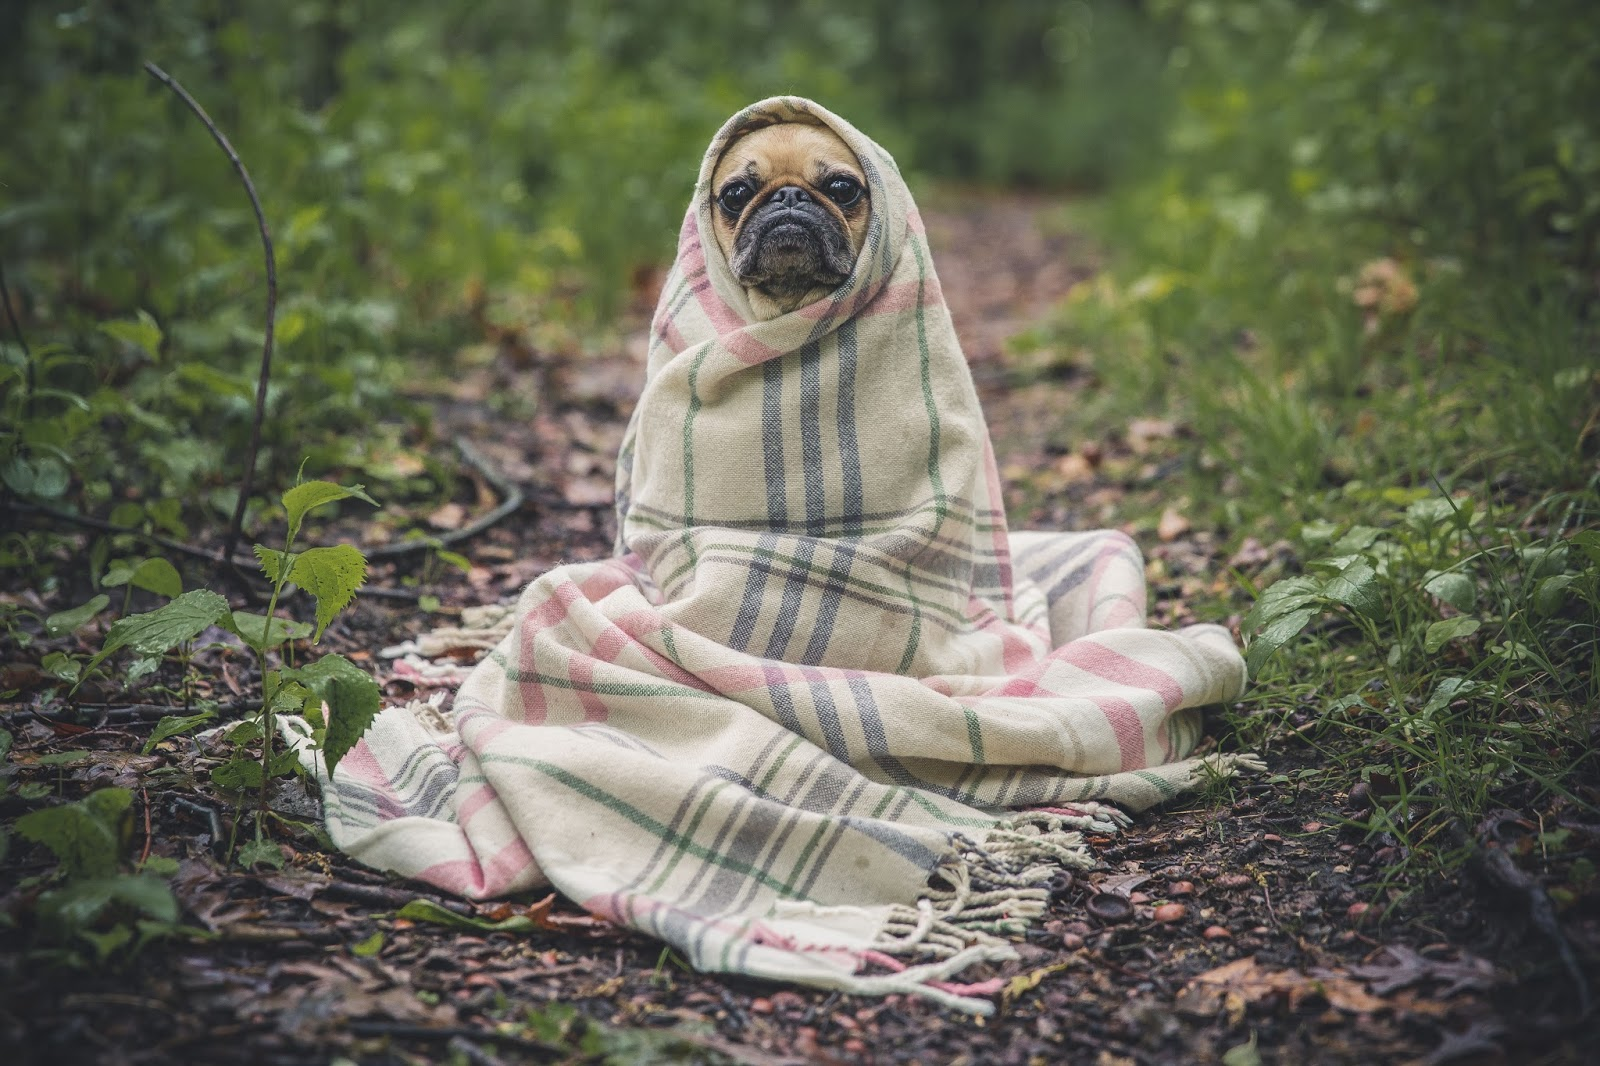 faking happiness in a relationship - grumpy pug dog wrapped in a blanket